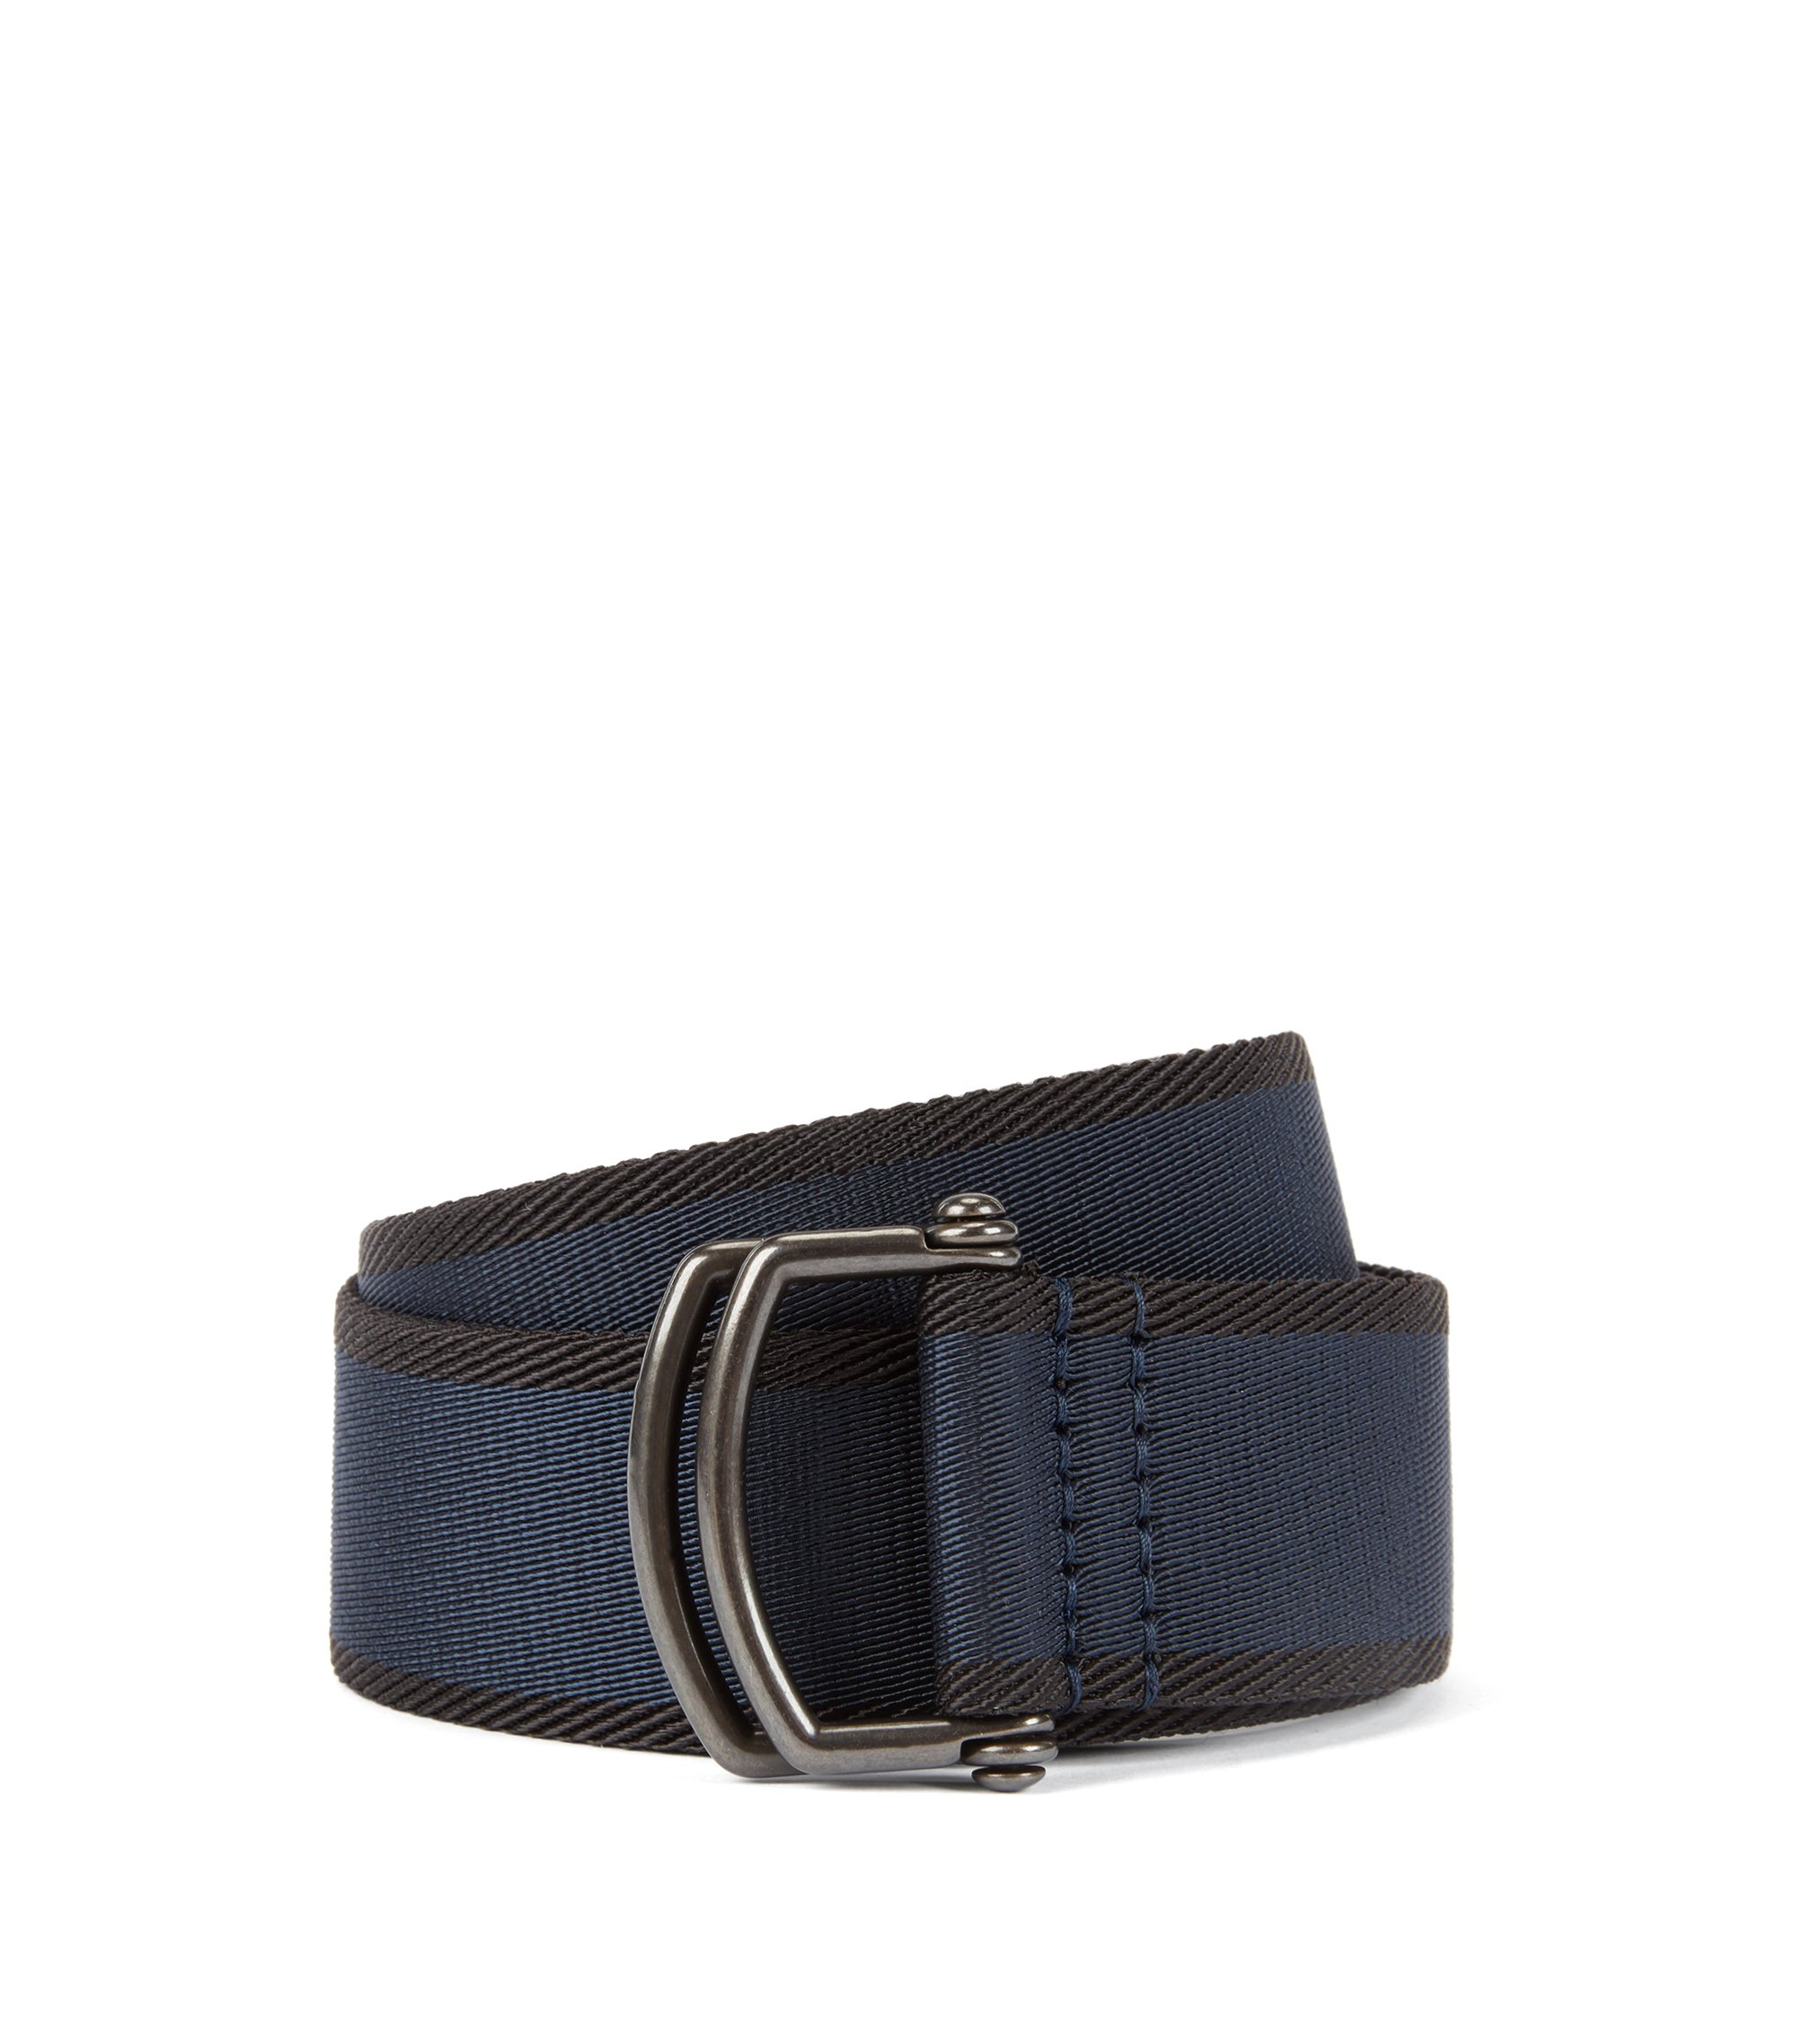 Fashion Show Capsule fabric belt with D-ring closure, Dark Blue